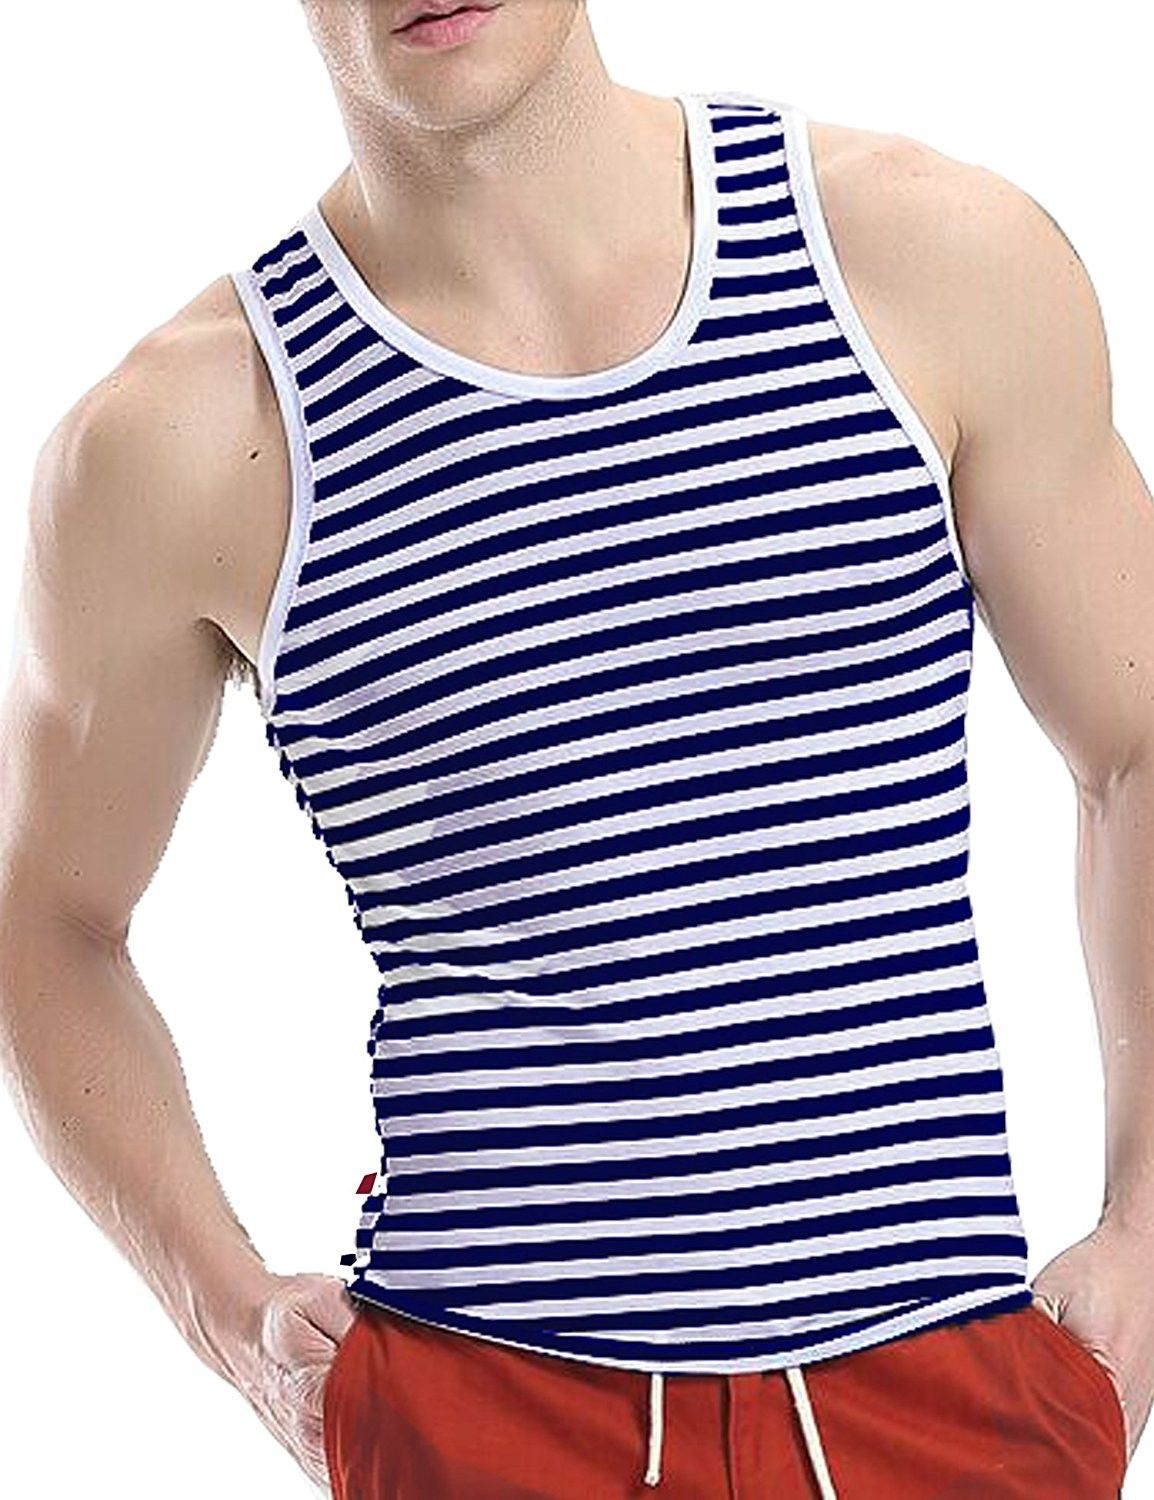 ac370cf823bfd Men s Crew Neck Y-Back Tank Tops Sleeveless Workout Muscle Undershirts -  Blue white - CF1808RRCUS